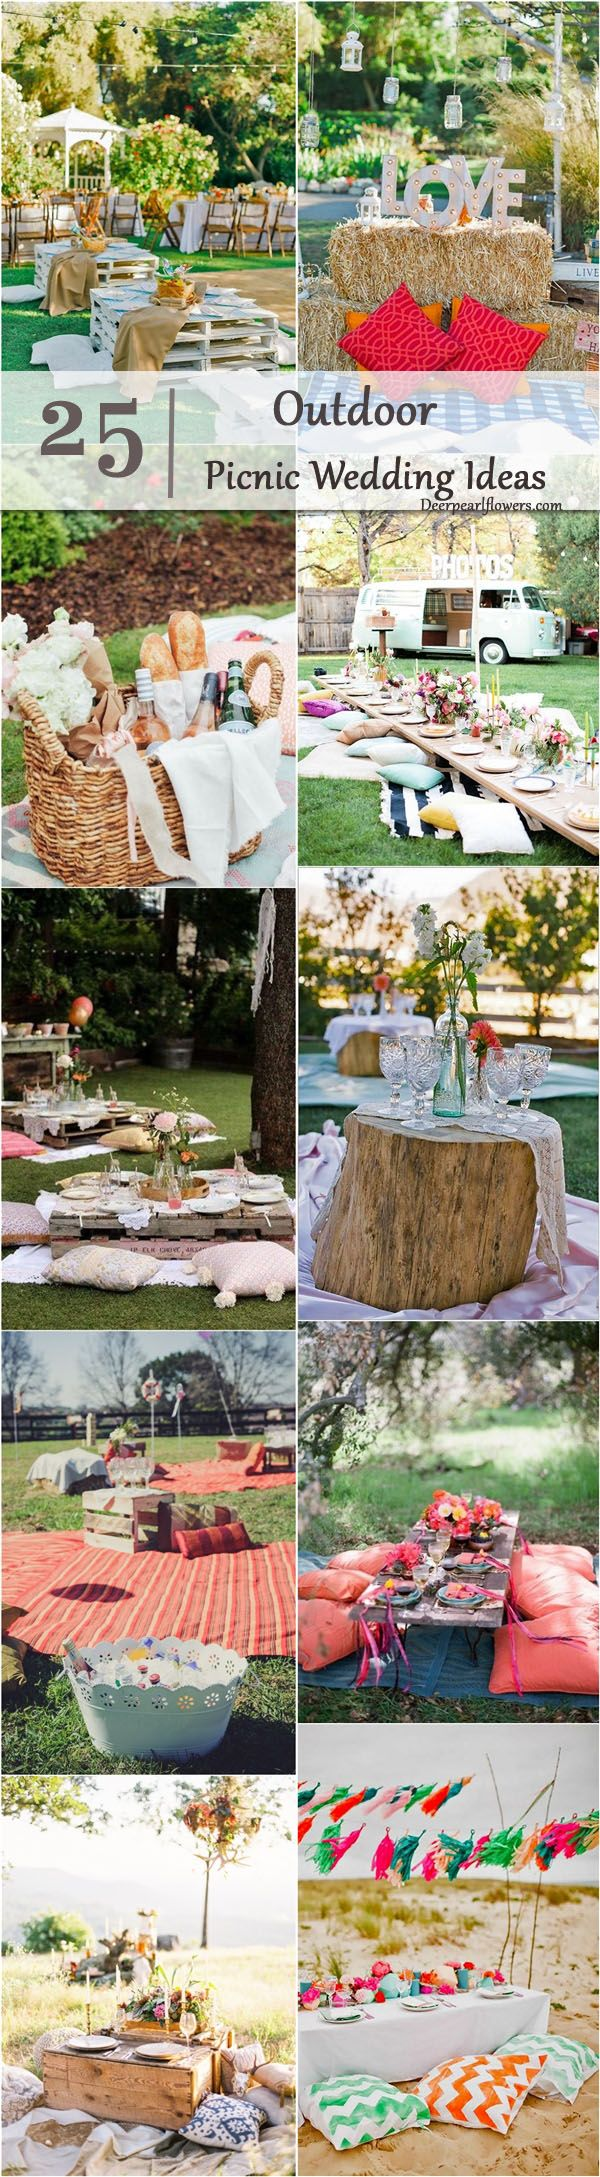 Best 25+ Picnic Wedding Receptions Ideas Only On Pinterest | Picnic Wedding  Foods, Picnic Weddings And Rehearsal Dinner Picnic